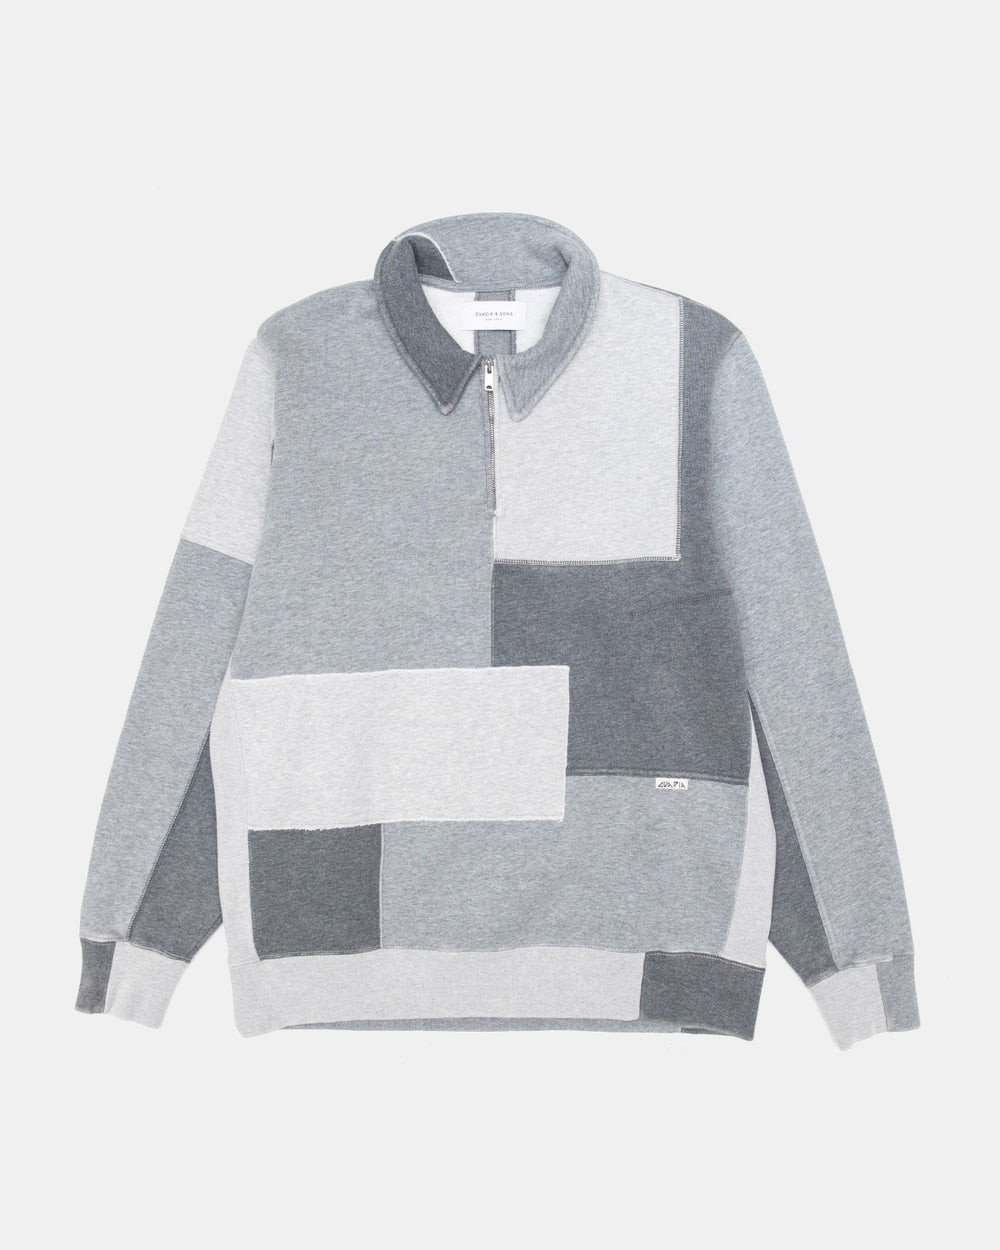 Ovadia & Sons - Distressed Patchwork Half Zip (Heather Charcoal)